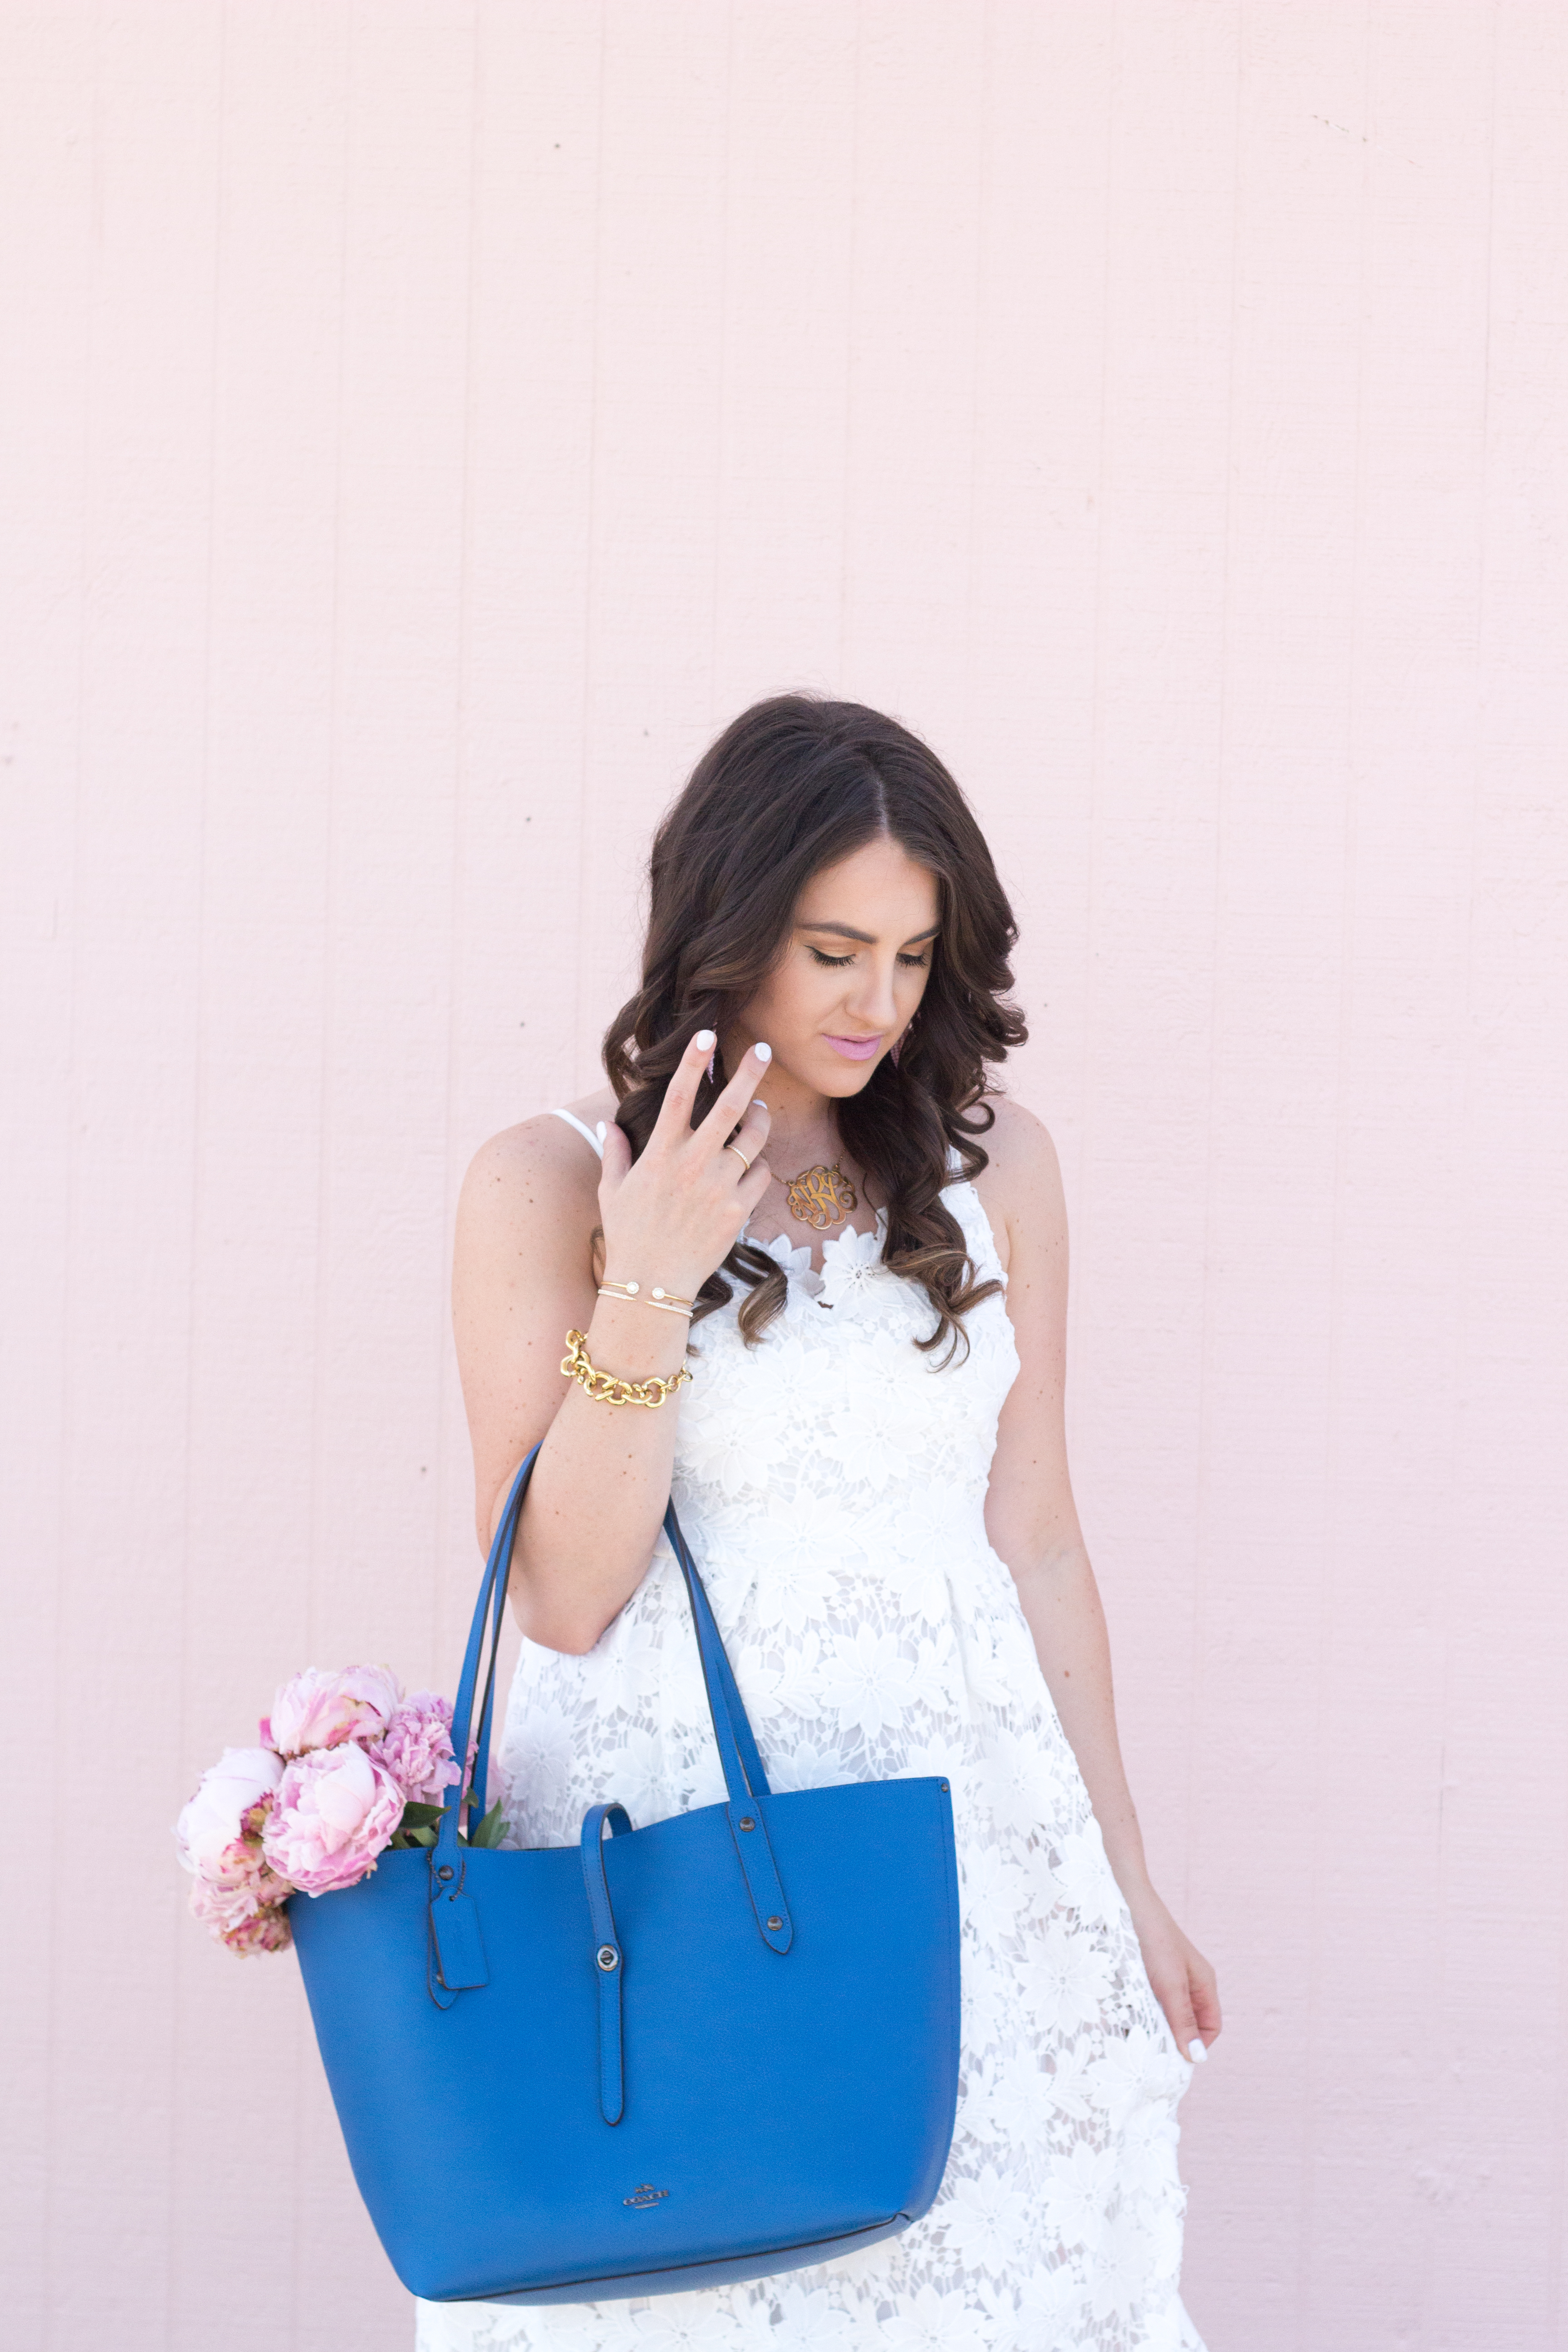 Classic style for Summer in this white dress and blue coach bag for inspiration.